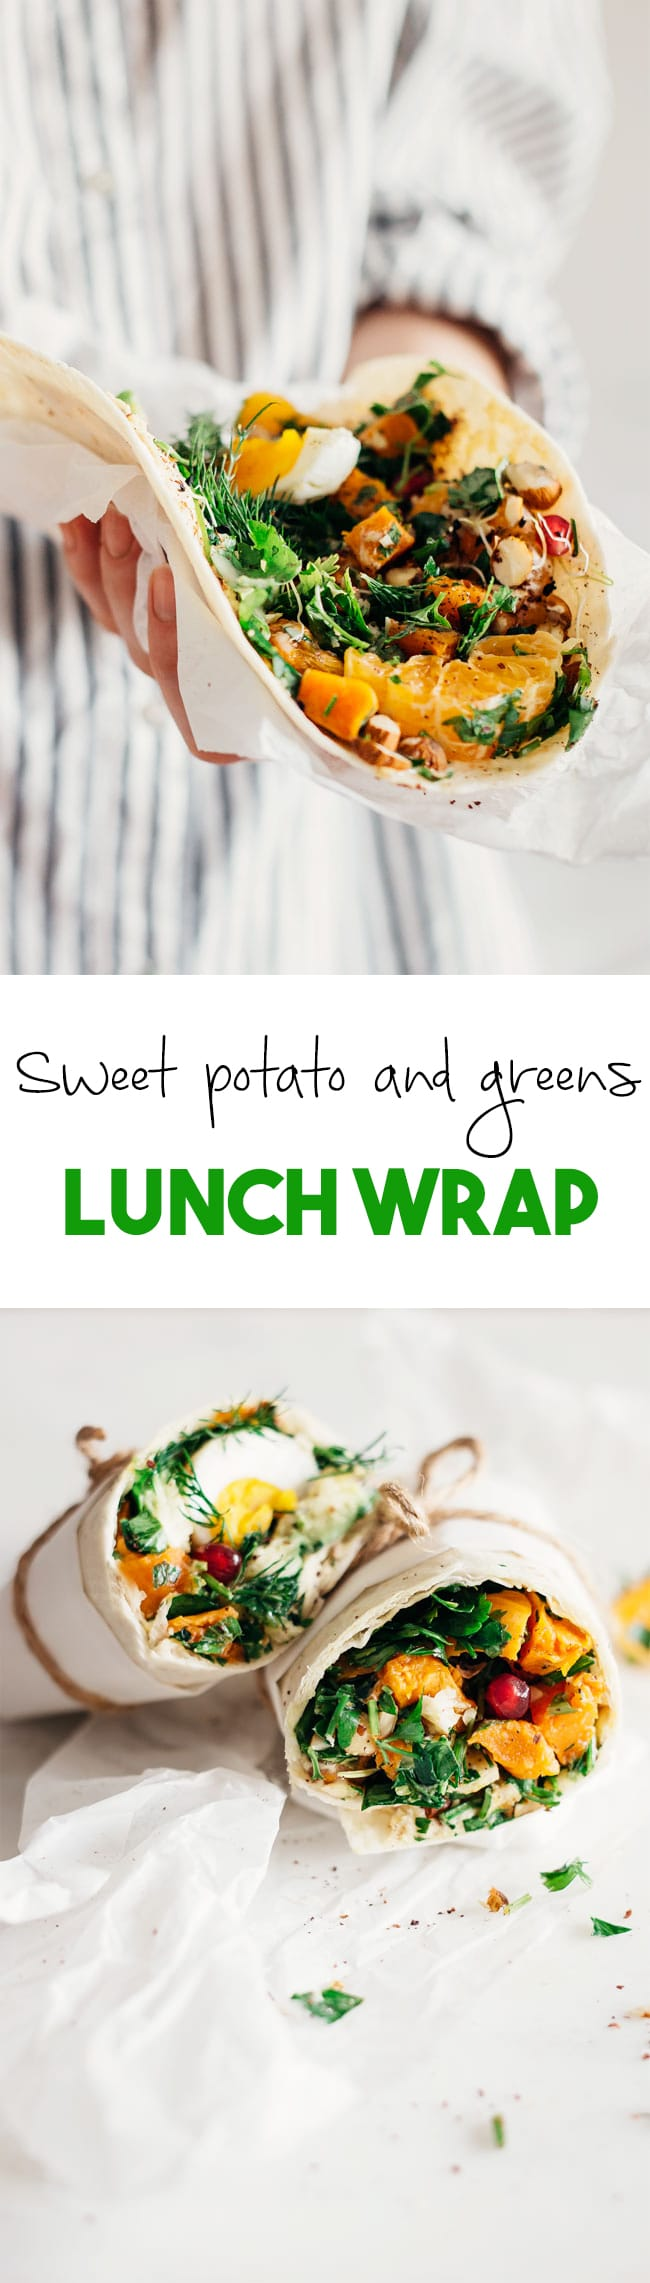 Easy wrap with sweet potato, hummus and greens for a healthy lunch on the run | TheAwesomeGreen.com